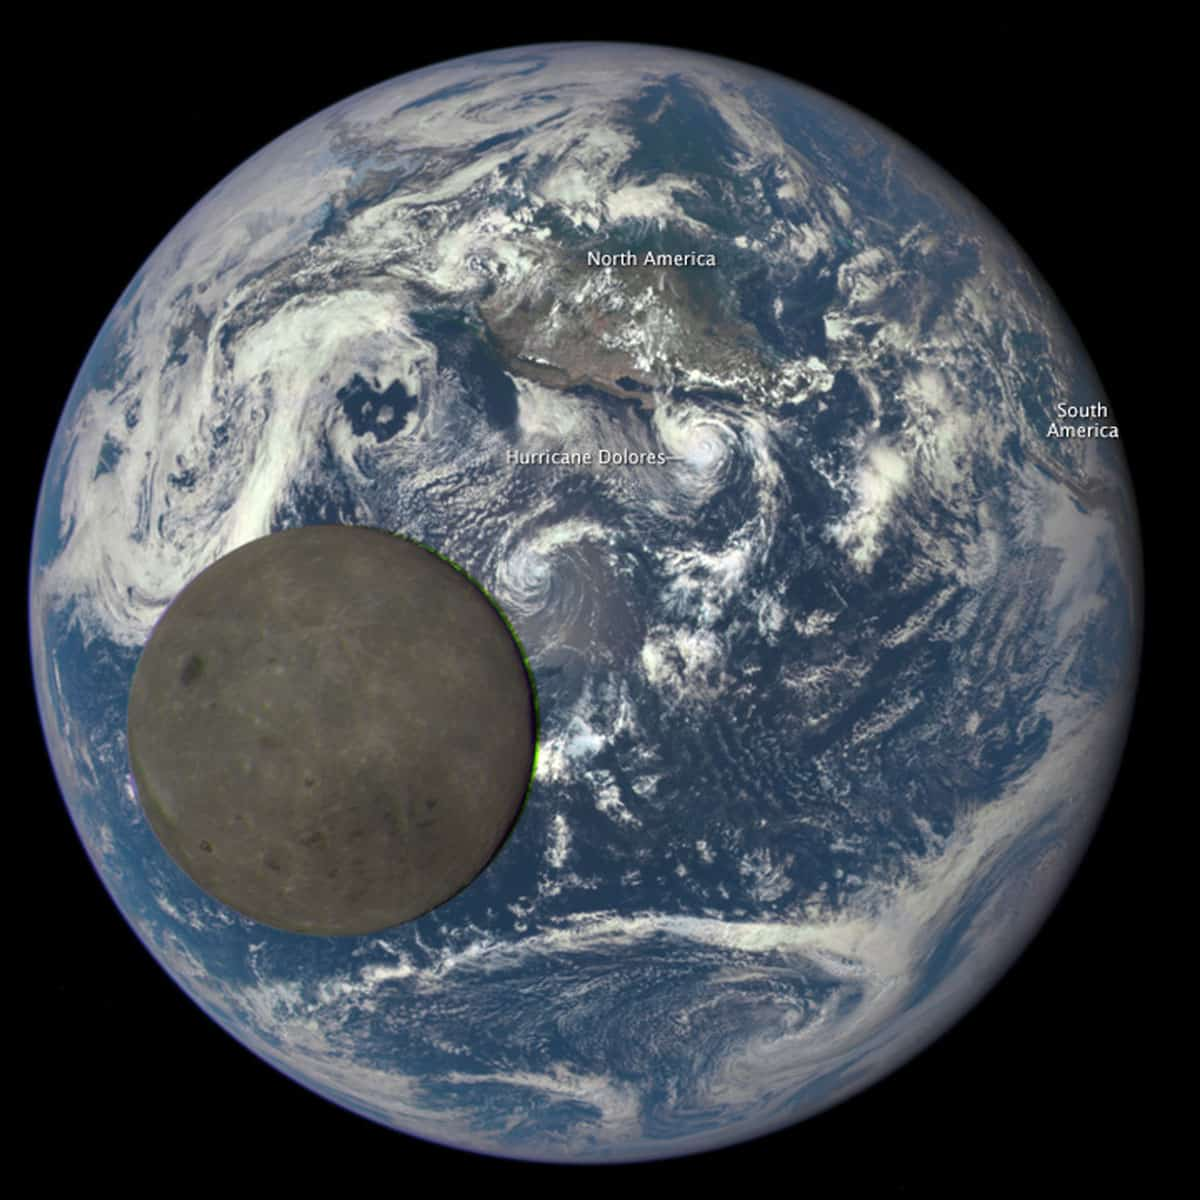 View of the Moon transiting the Earth on July 16, 2015.